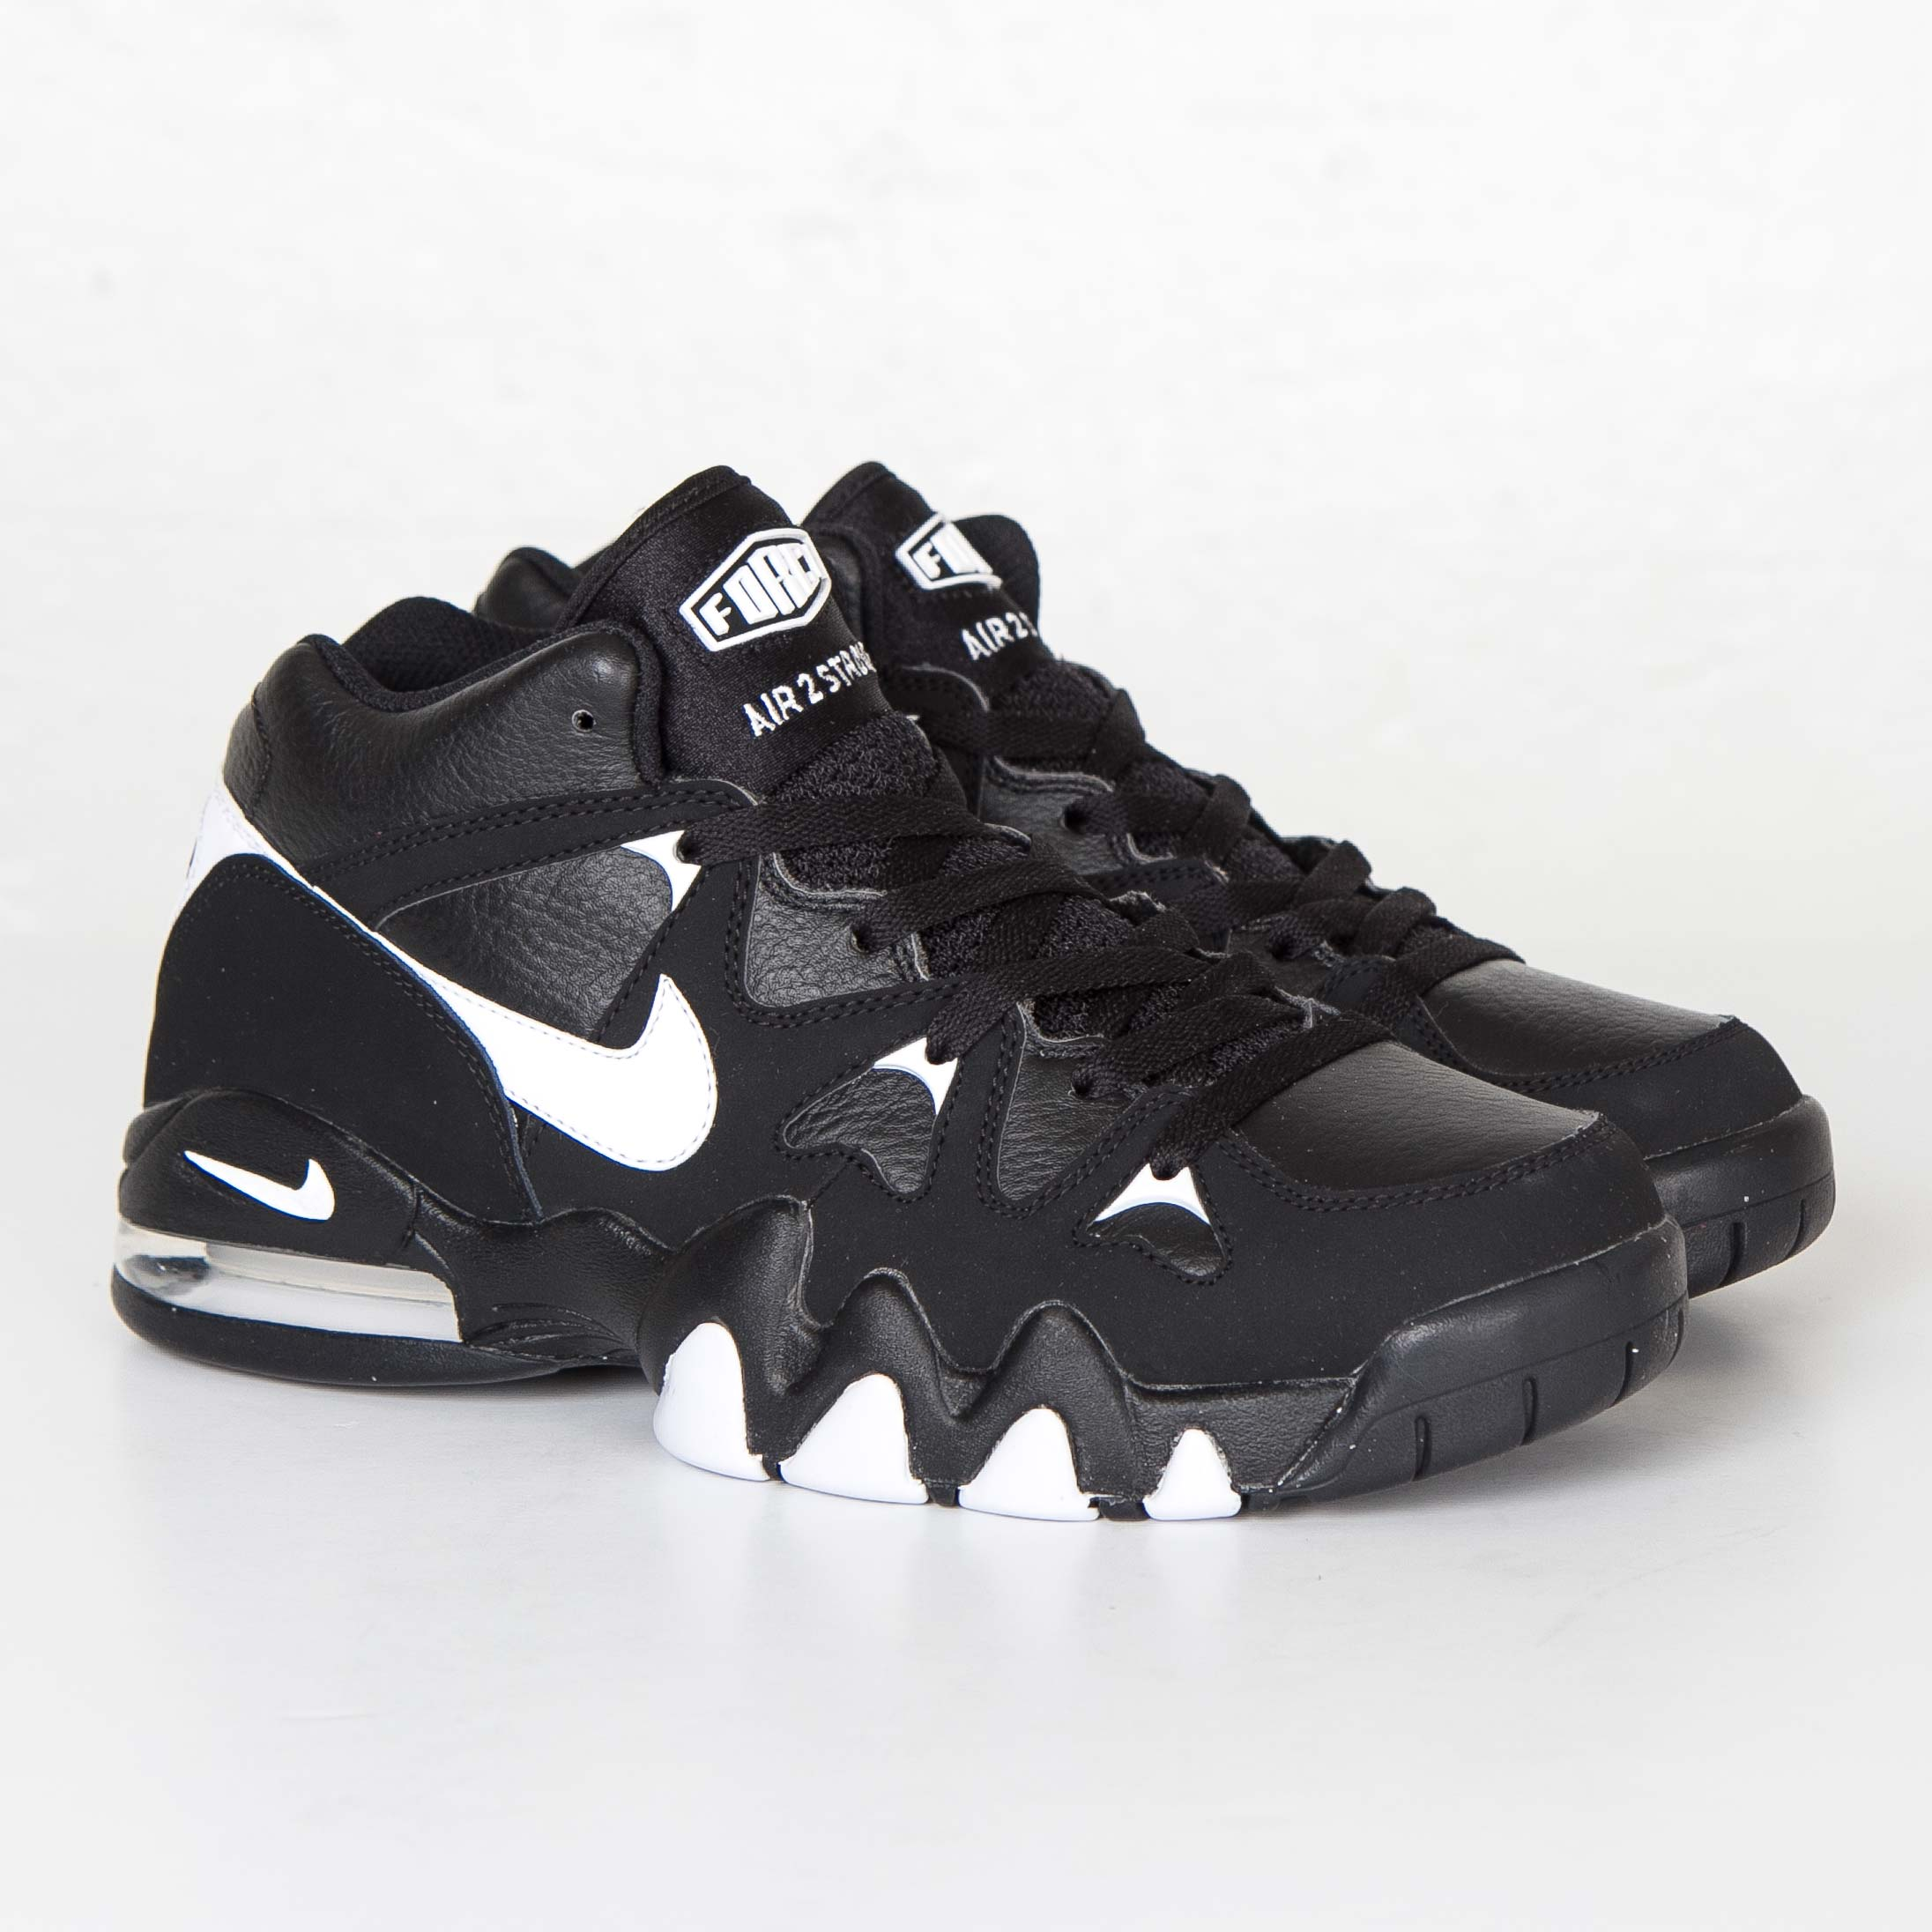 b351aa0ab361a Nike Air Strong 2 Mid - 805892-001 - Sneakersnstuff